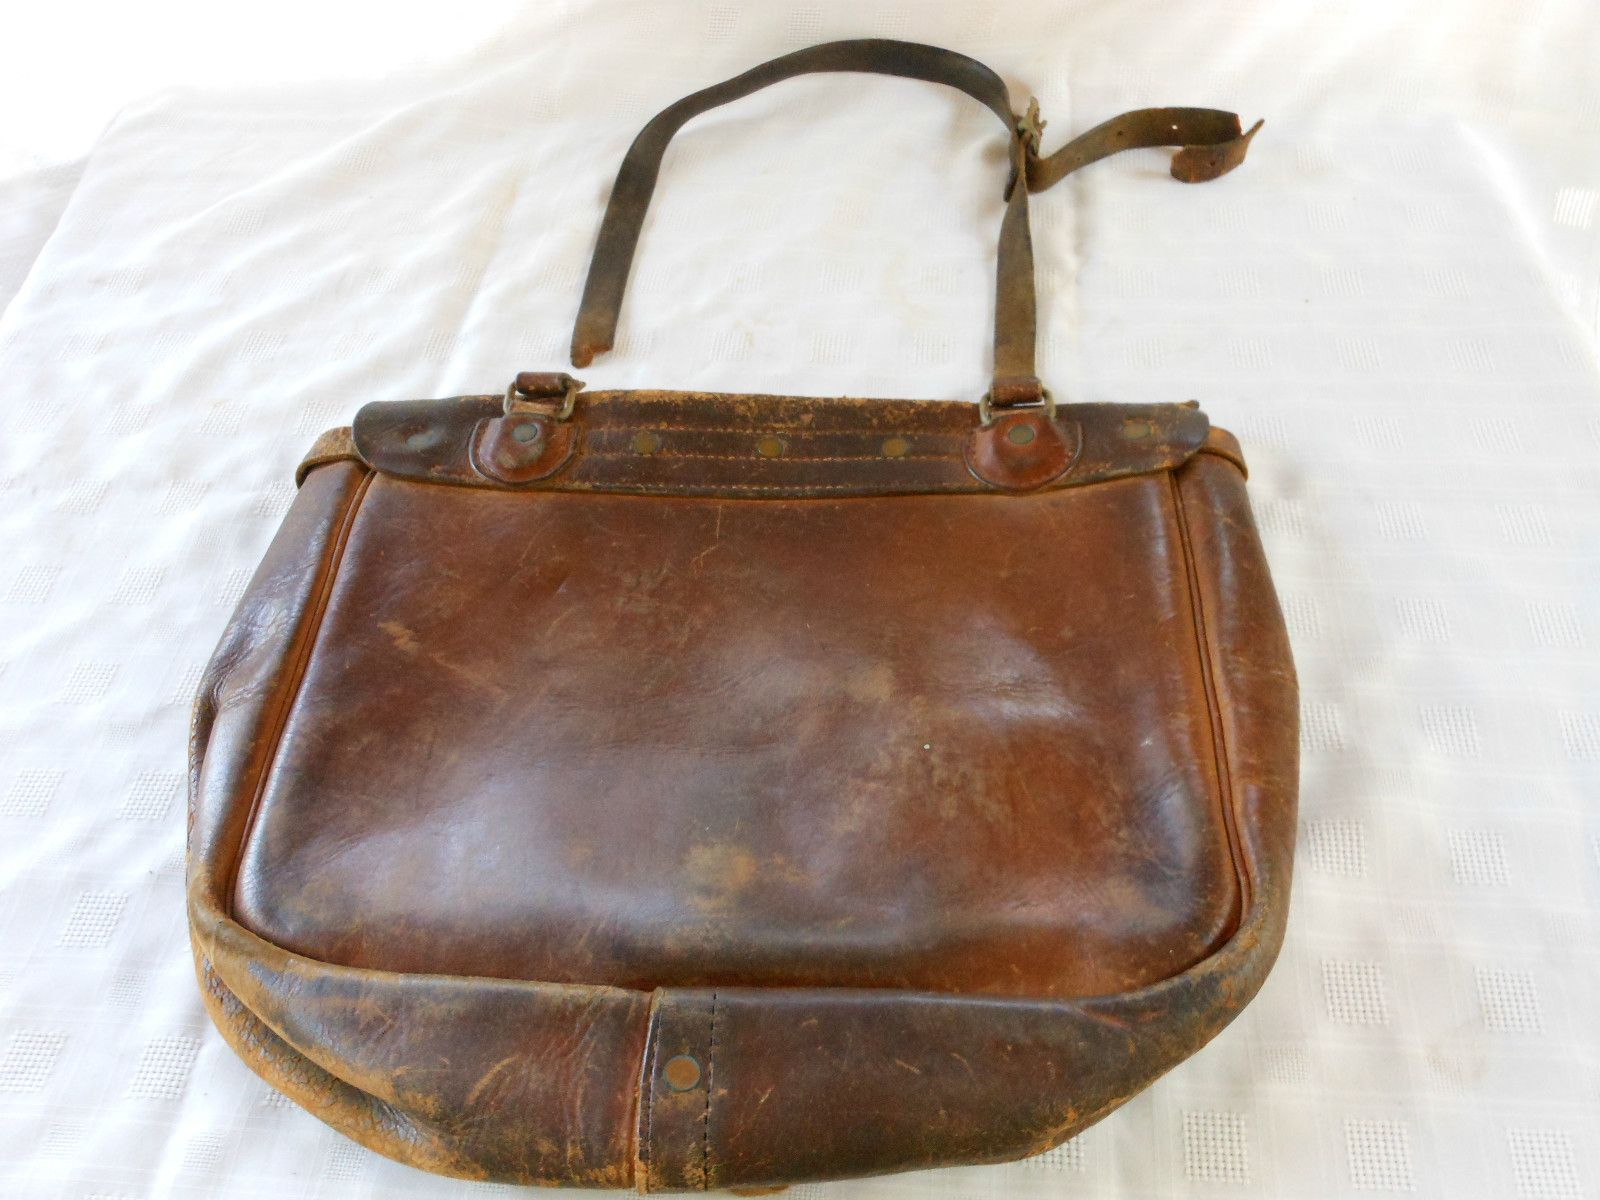 ANTIQUE / VINTAGE POSTAL MAIL BAG SATCHEL LEATHER USPS